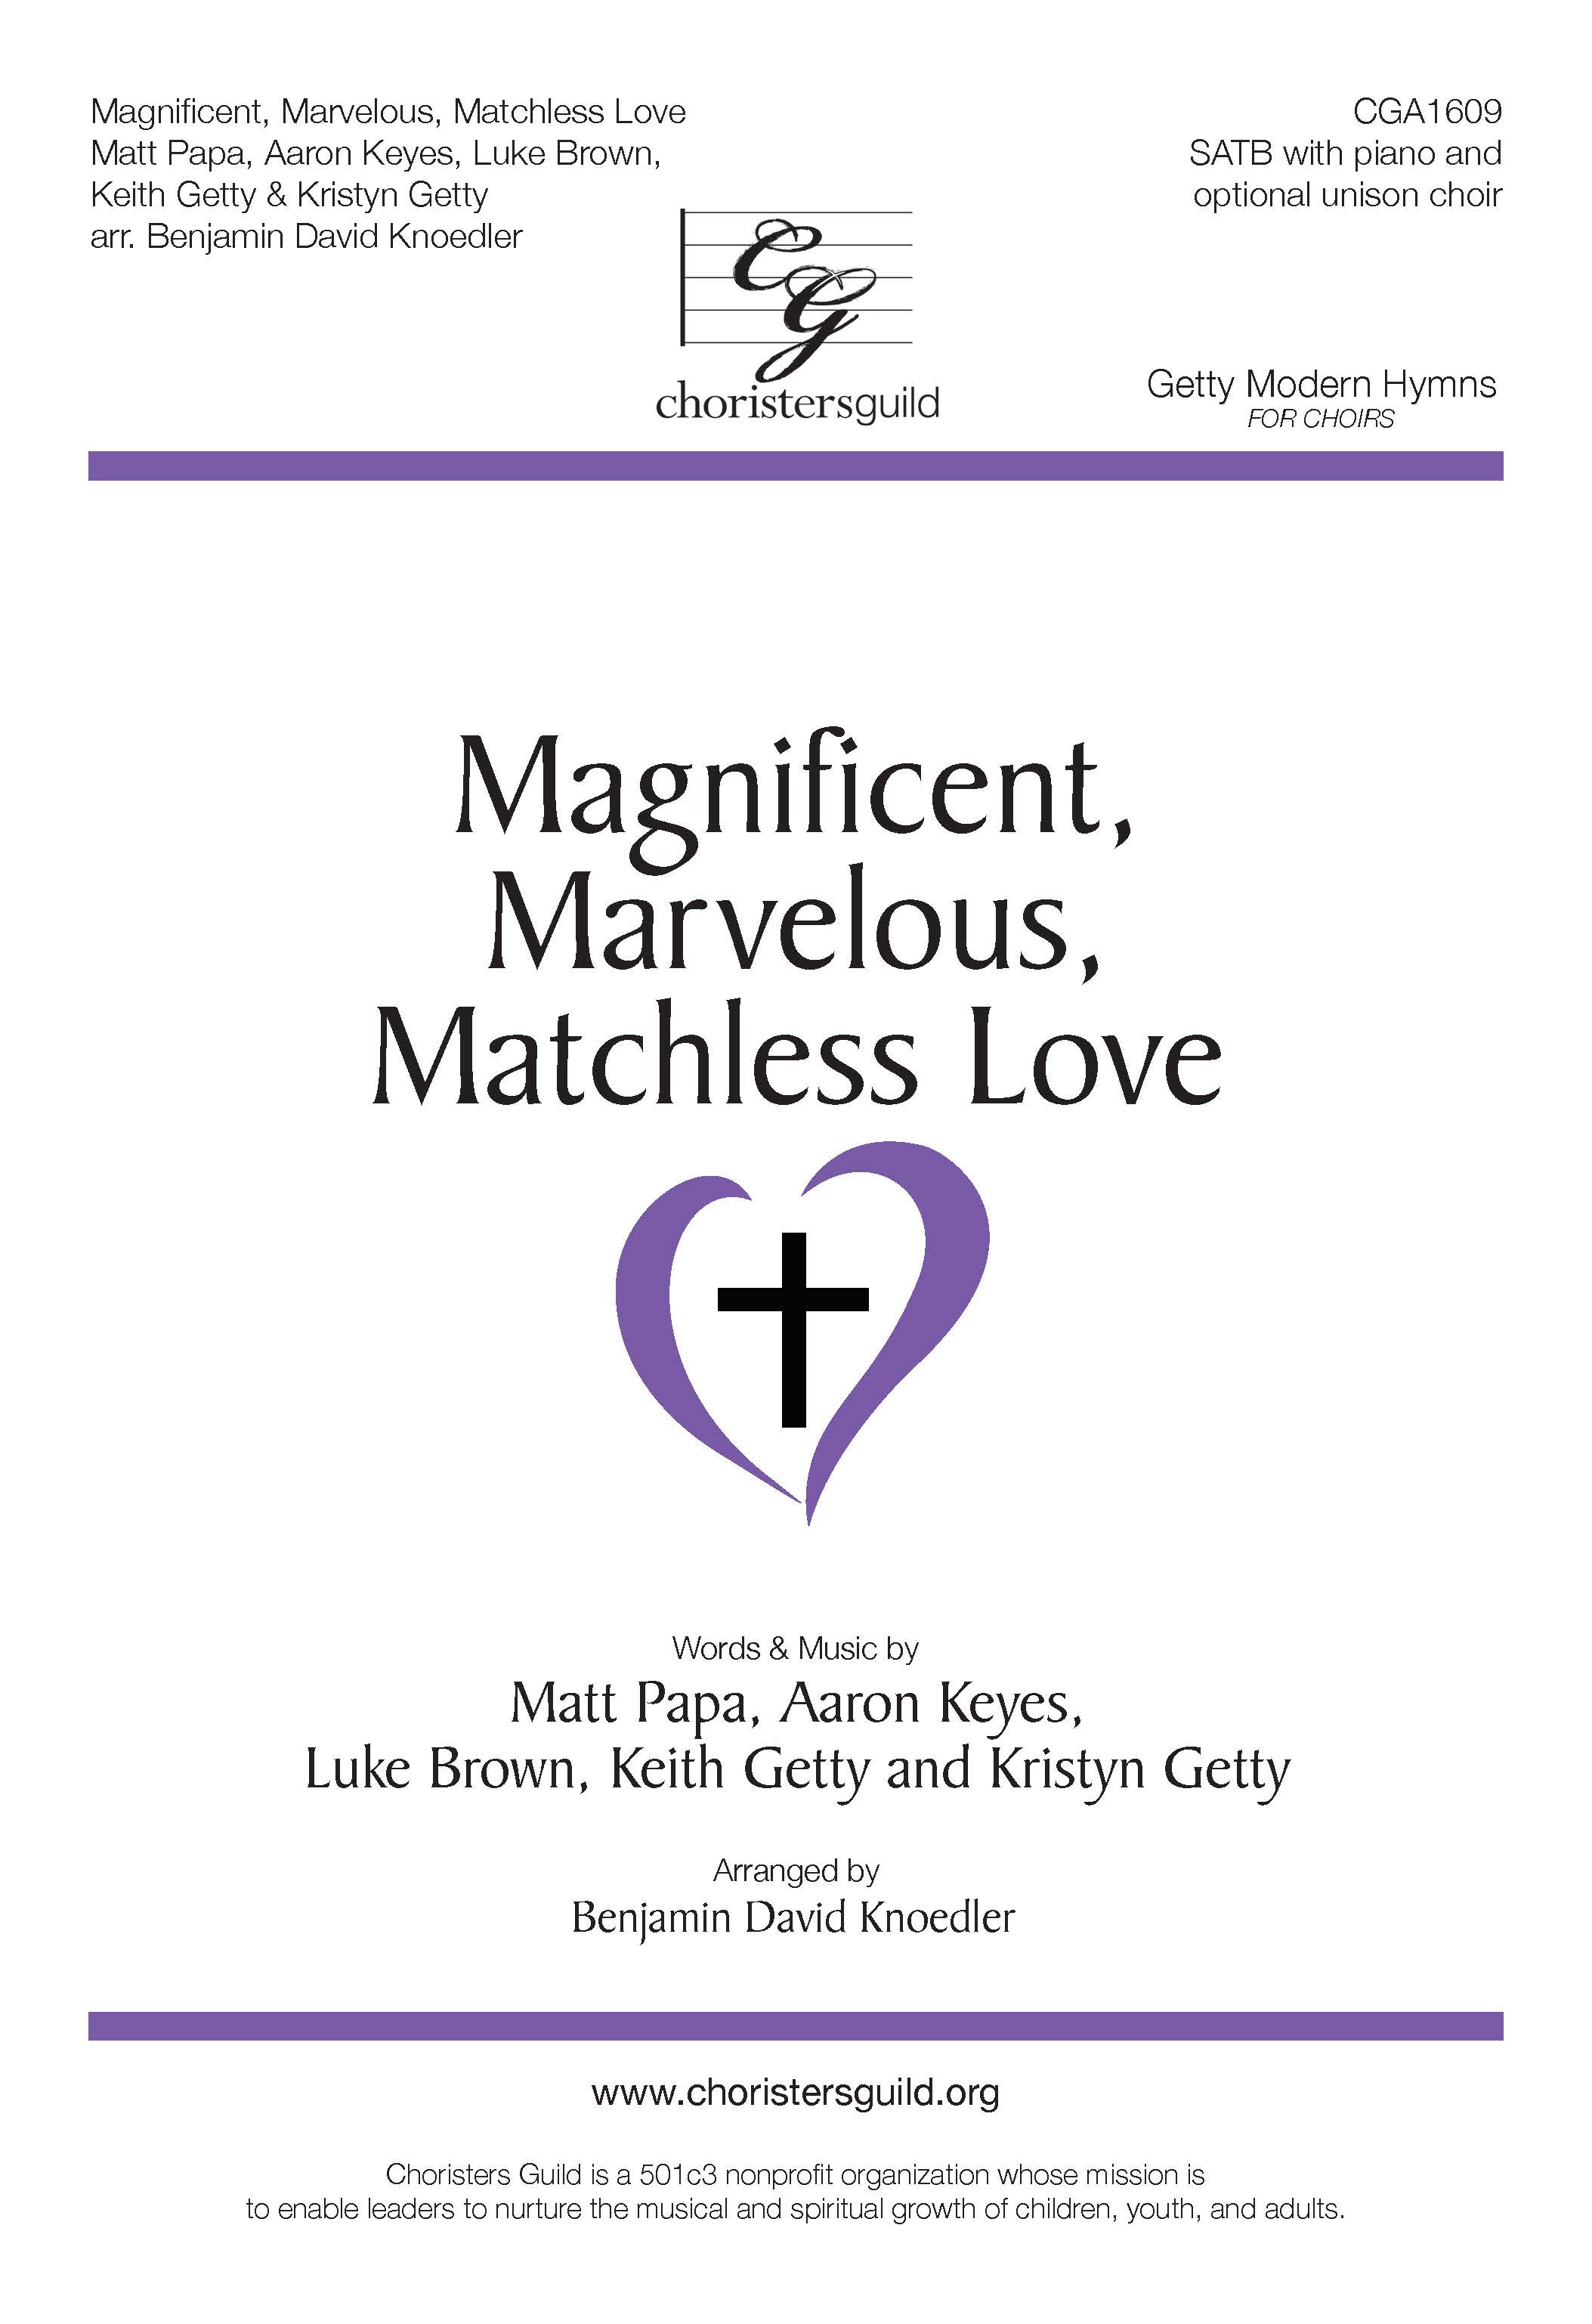 Magnificent, Marvelous, Matchless Love - SATB